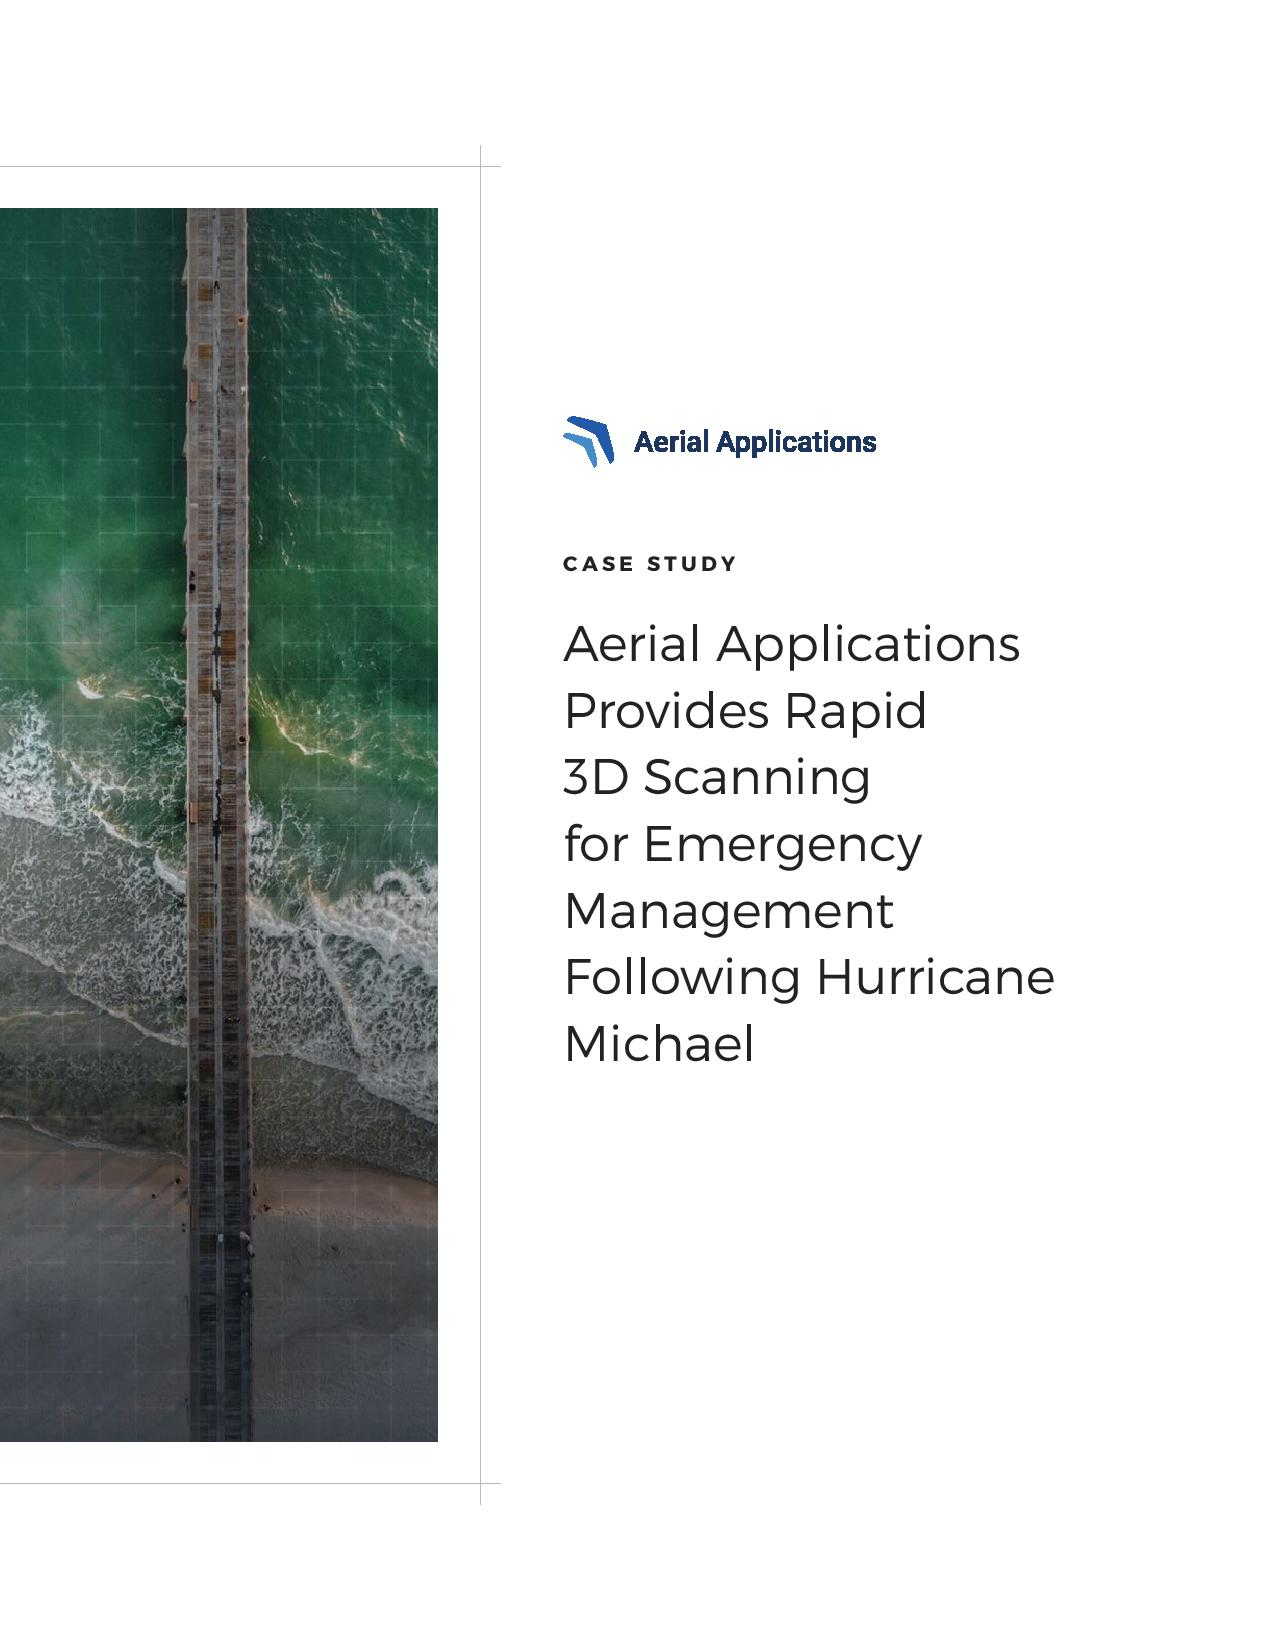 Aerial_Applications_Aerial_Applications_Provides_Rapid_3D_Scanning_for_Emergency_Management_Following_Hurricane_Michael_Case_Study_Featured_Image